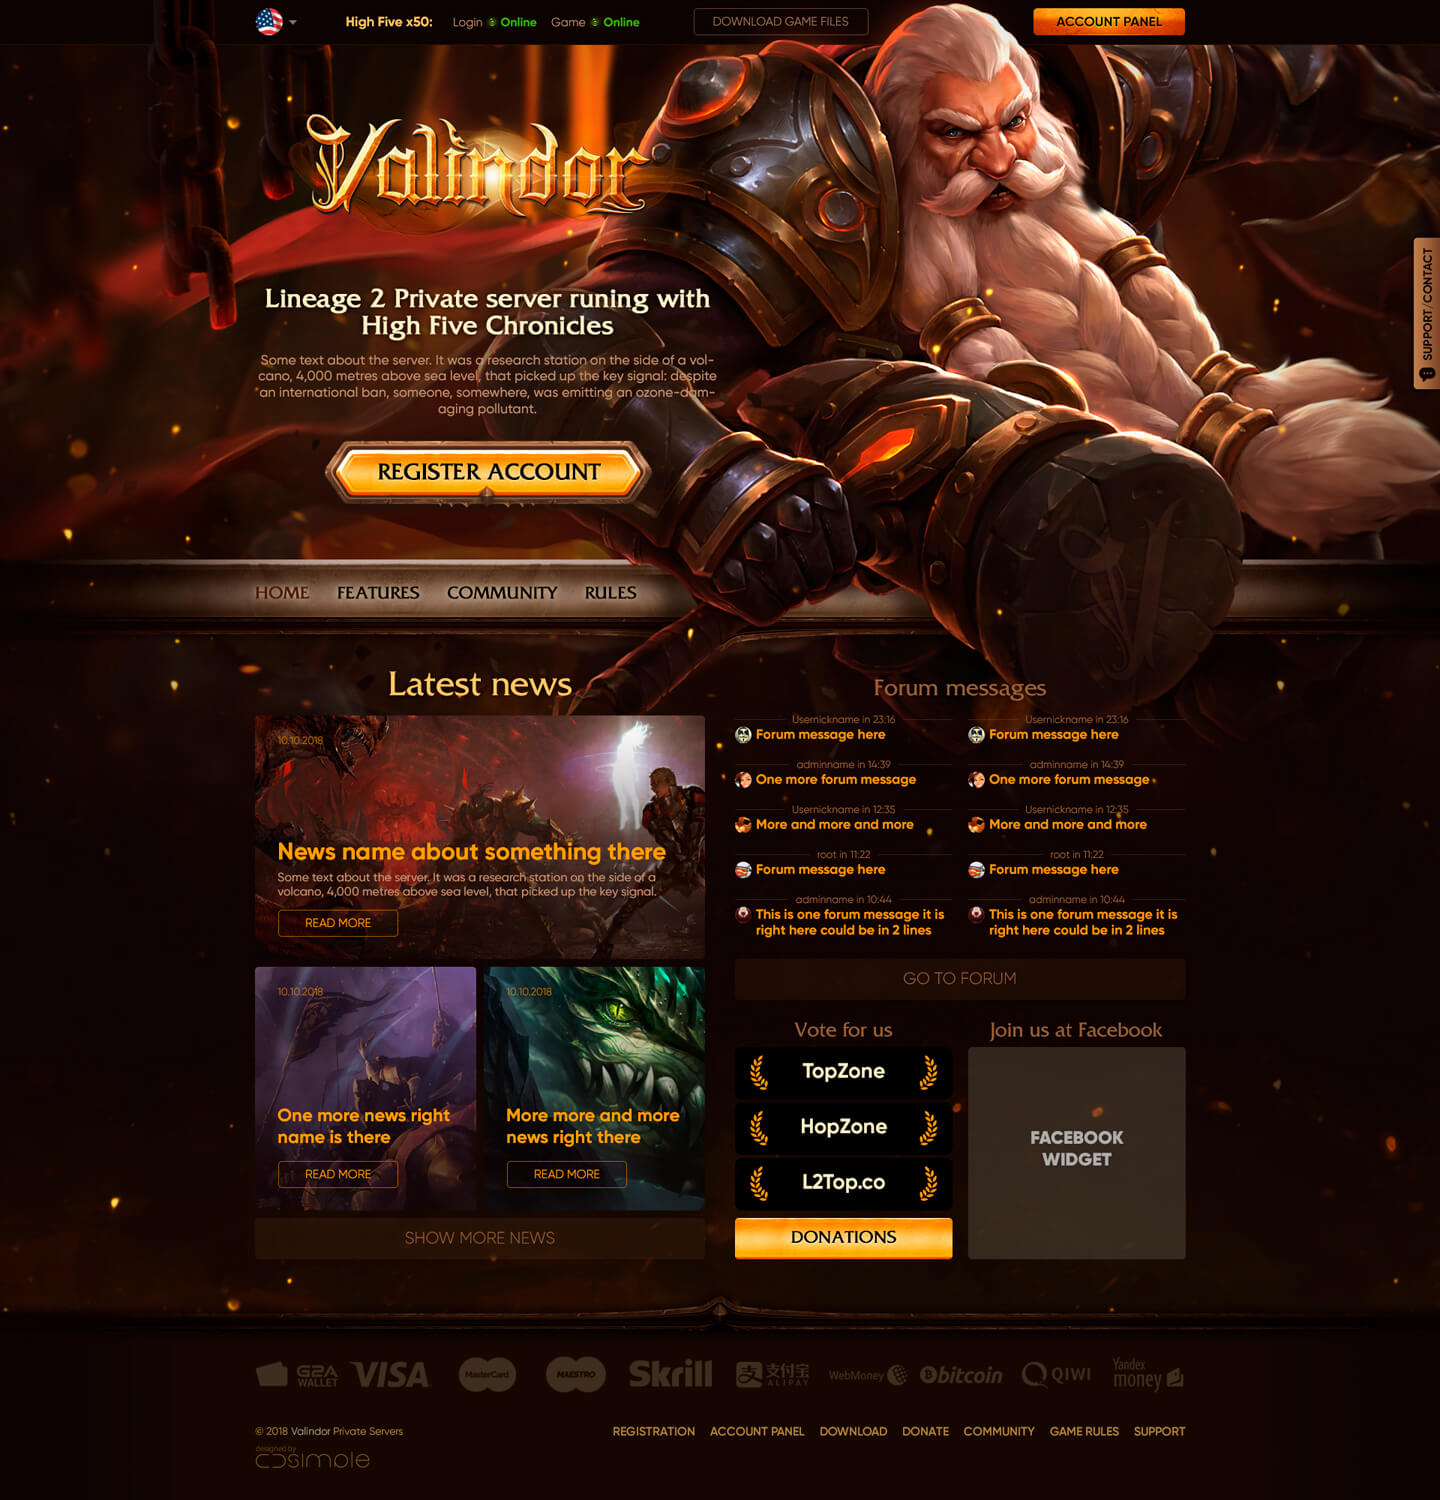 Valindor > Website design and promo page for Lineage 2